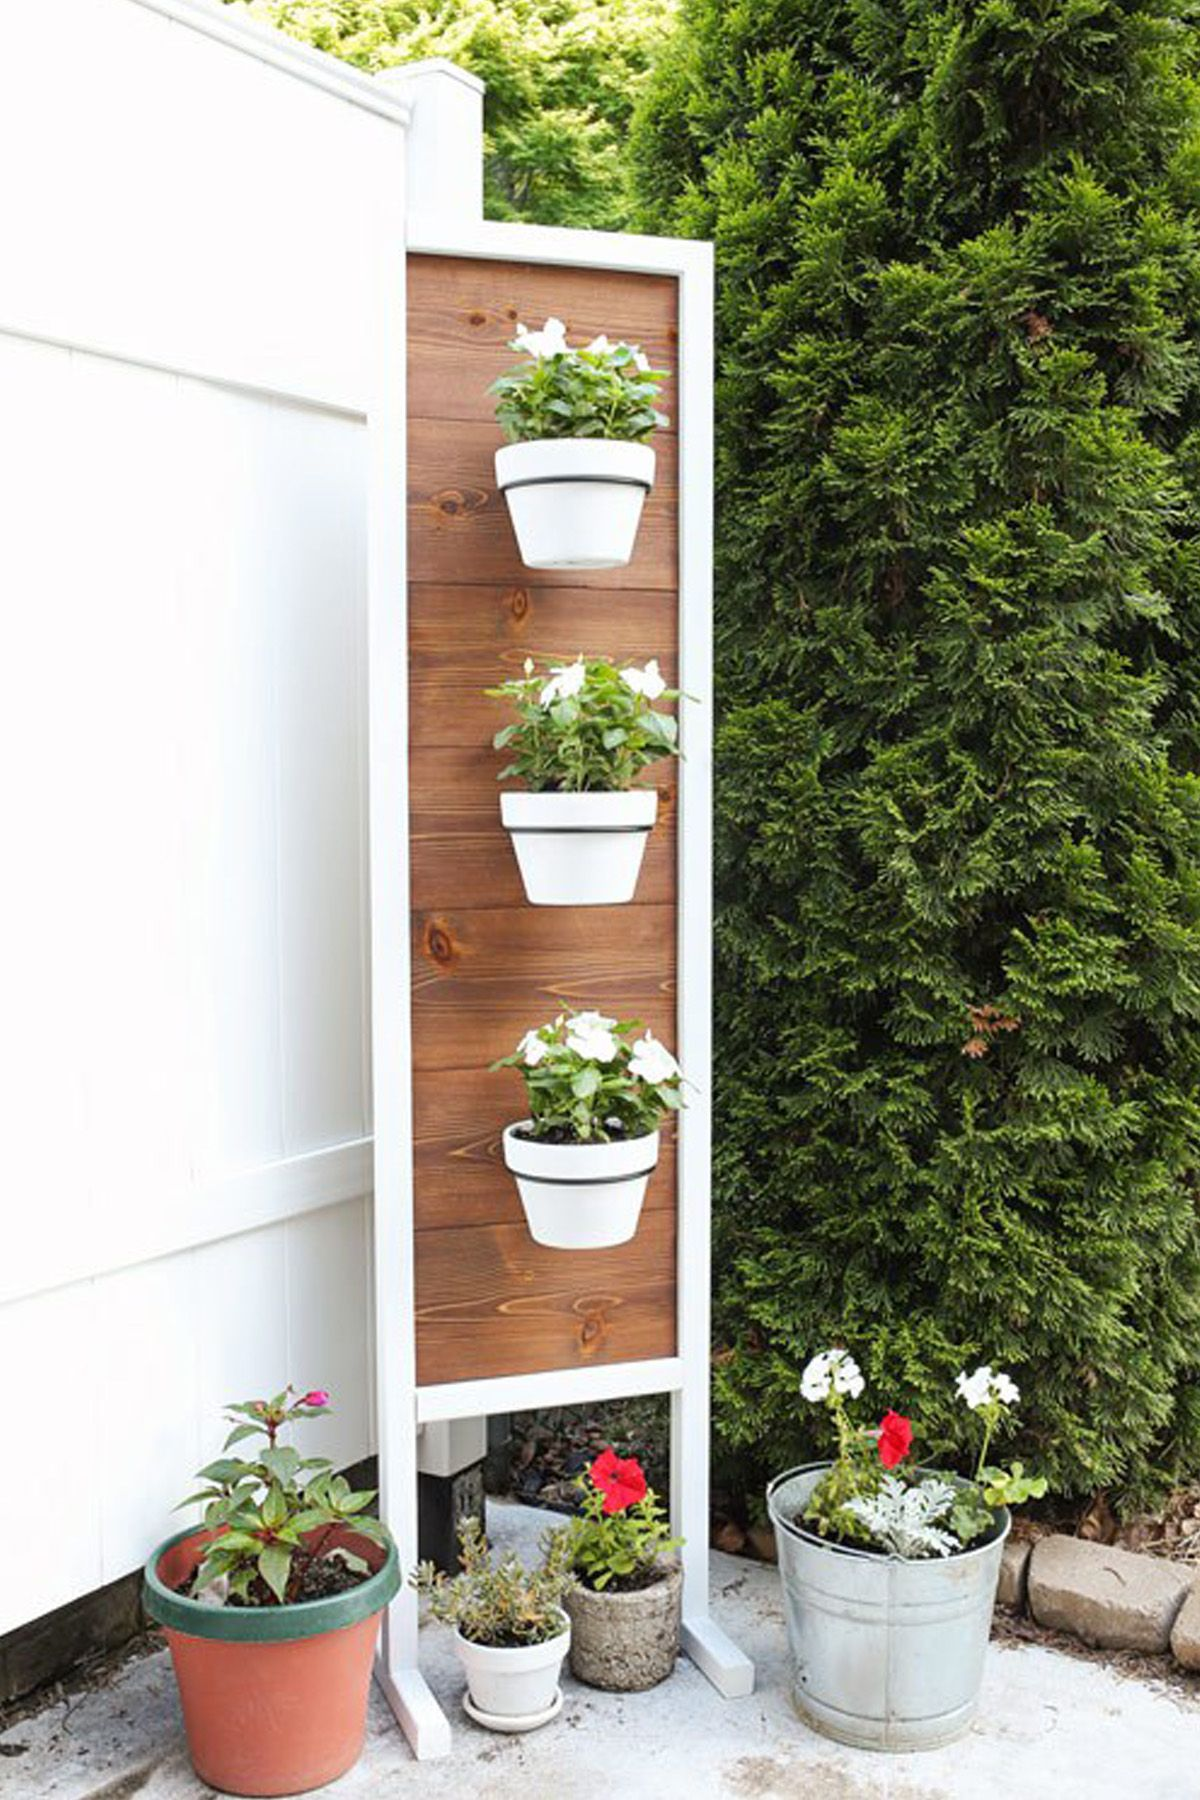 Unique Outdoor Flower Pots 16 Container Gardening Ideas Potted Plant Ideas We Love